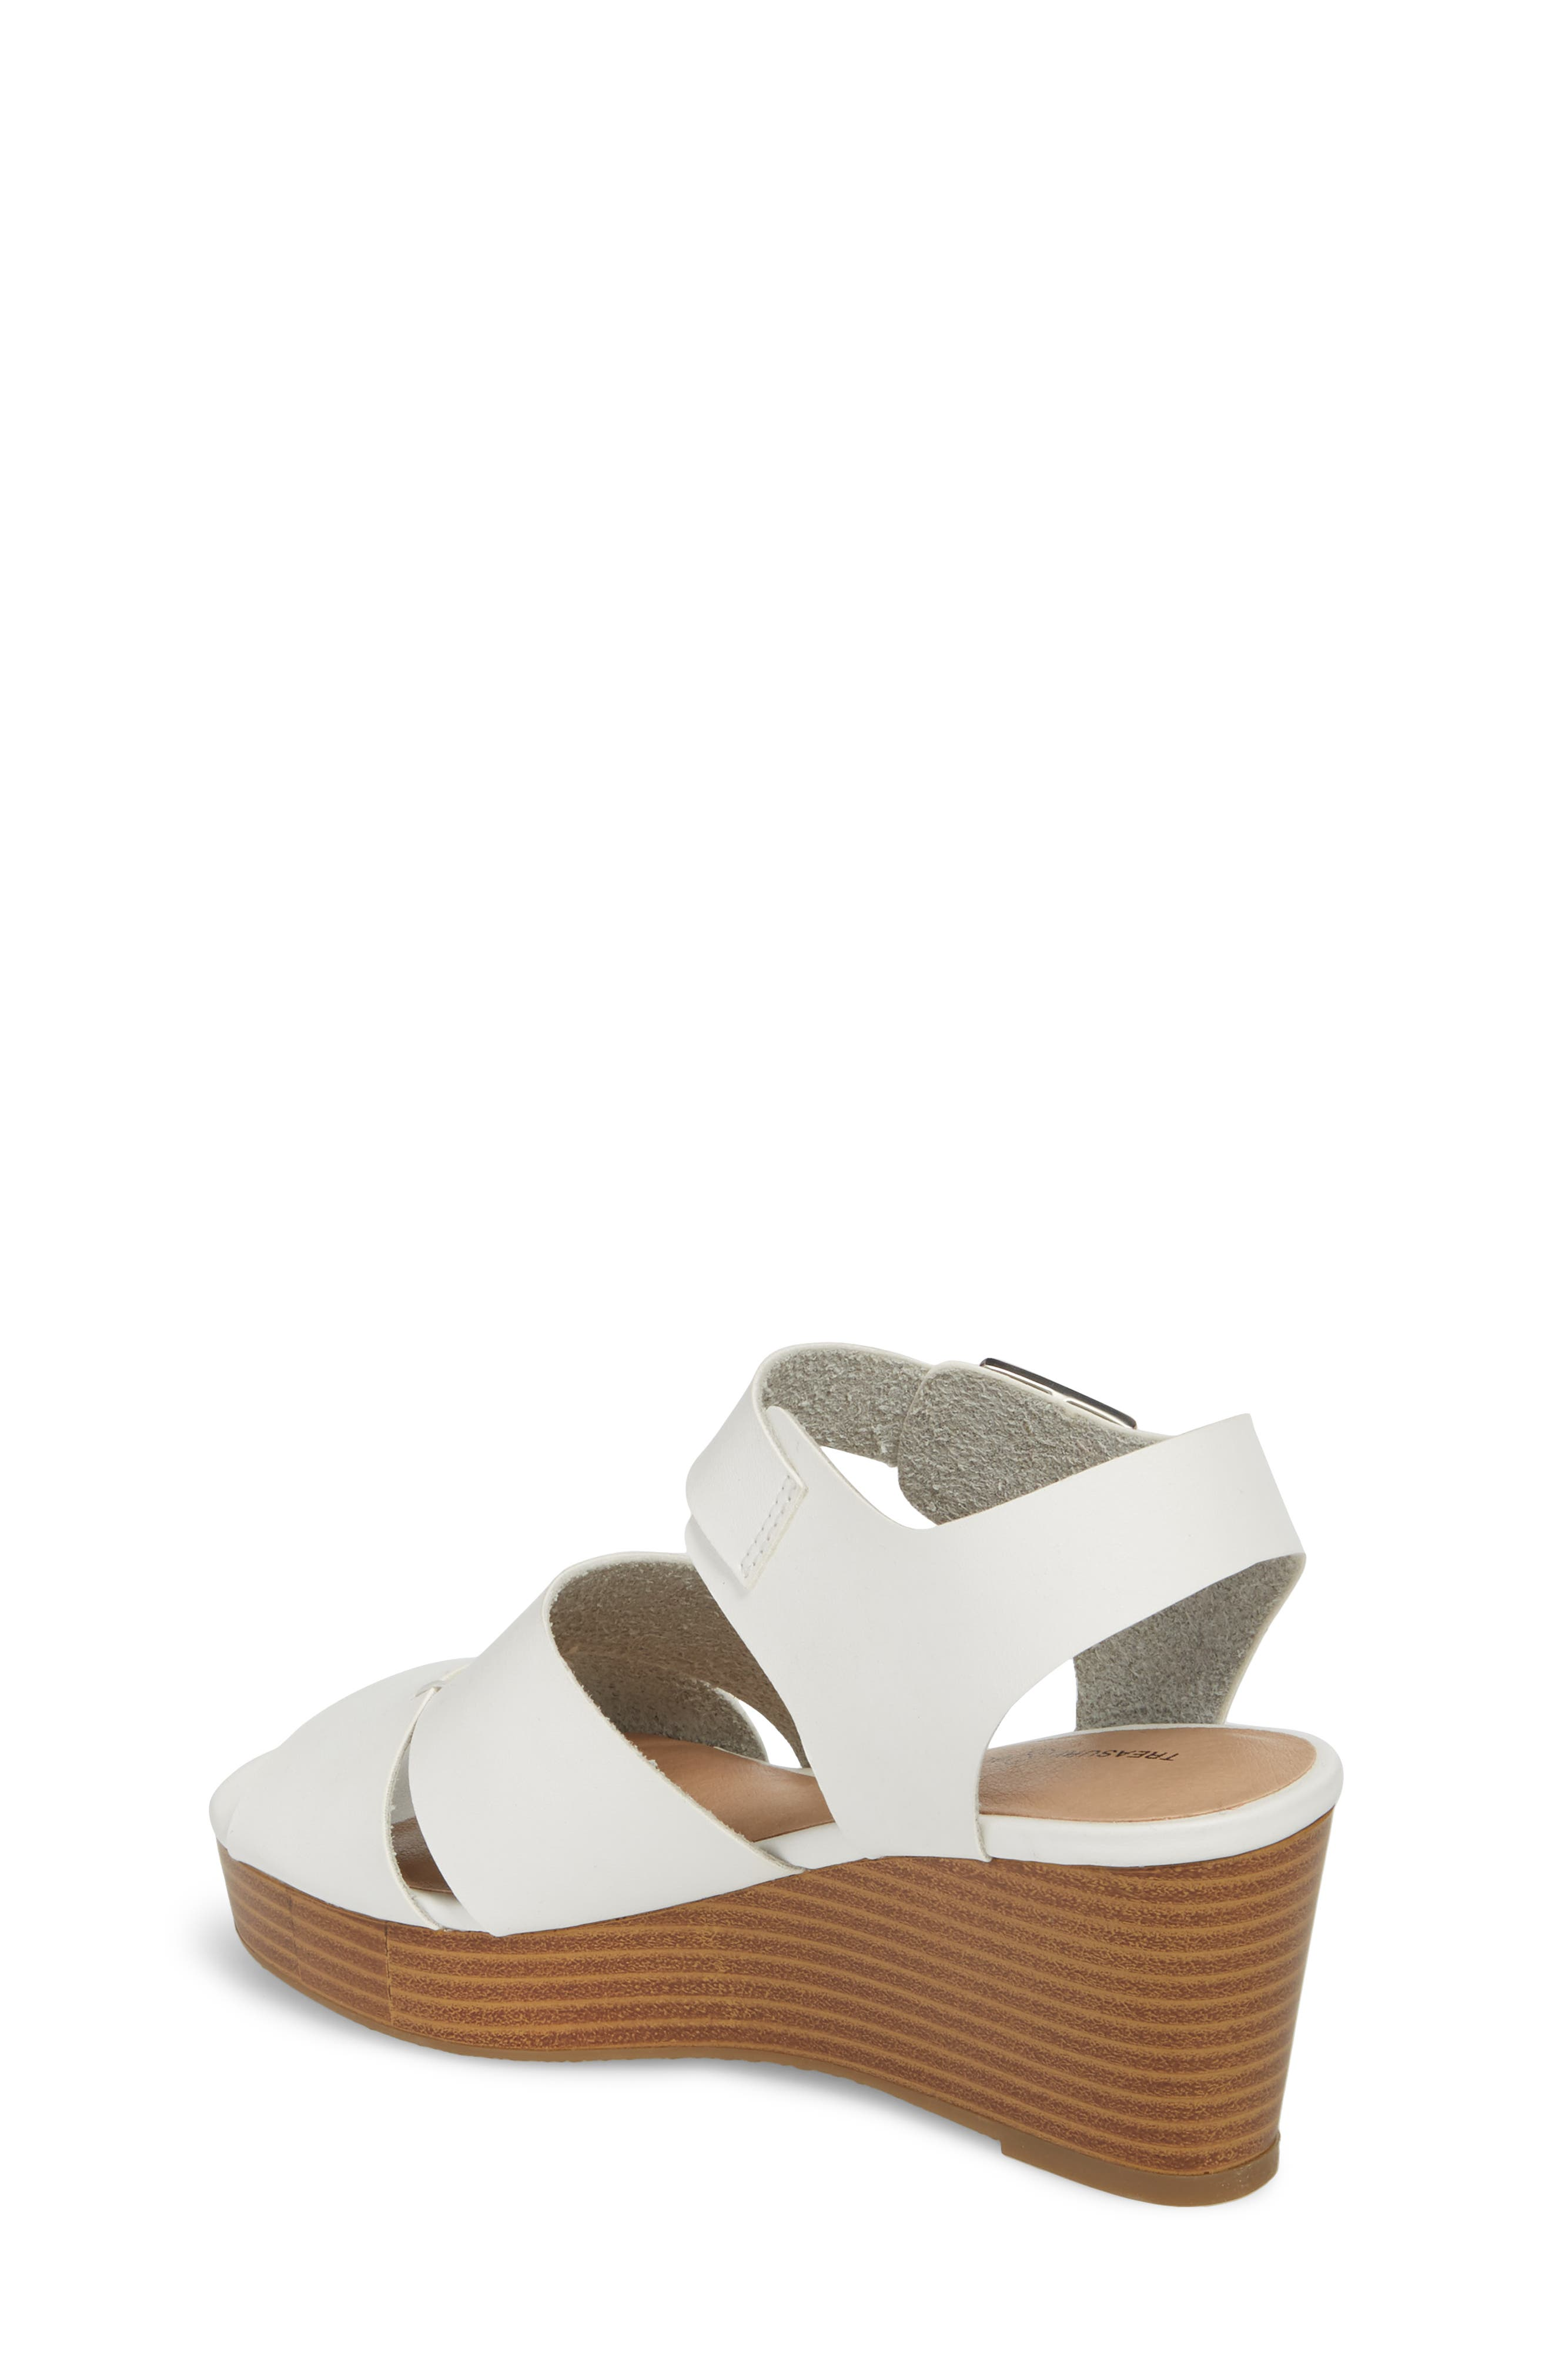 Hunter Platform Wedge Sandal,                             Alternate thumbnail 2, color,                             White Faux Leather